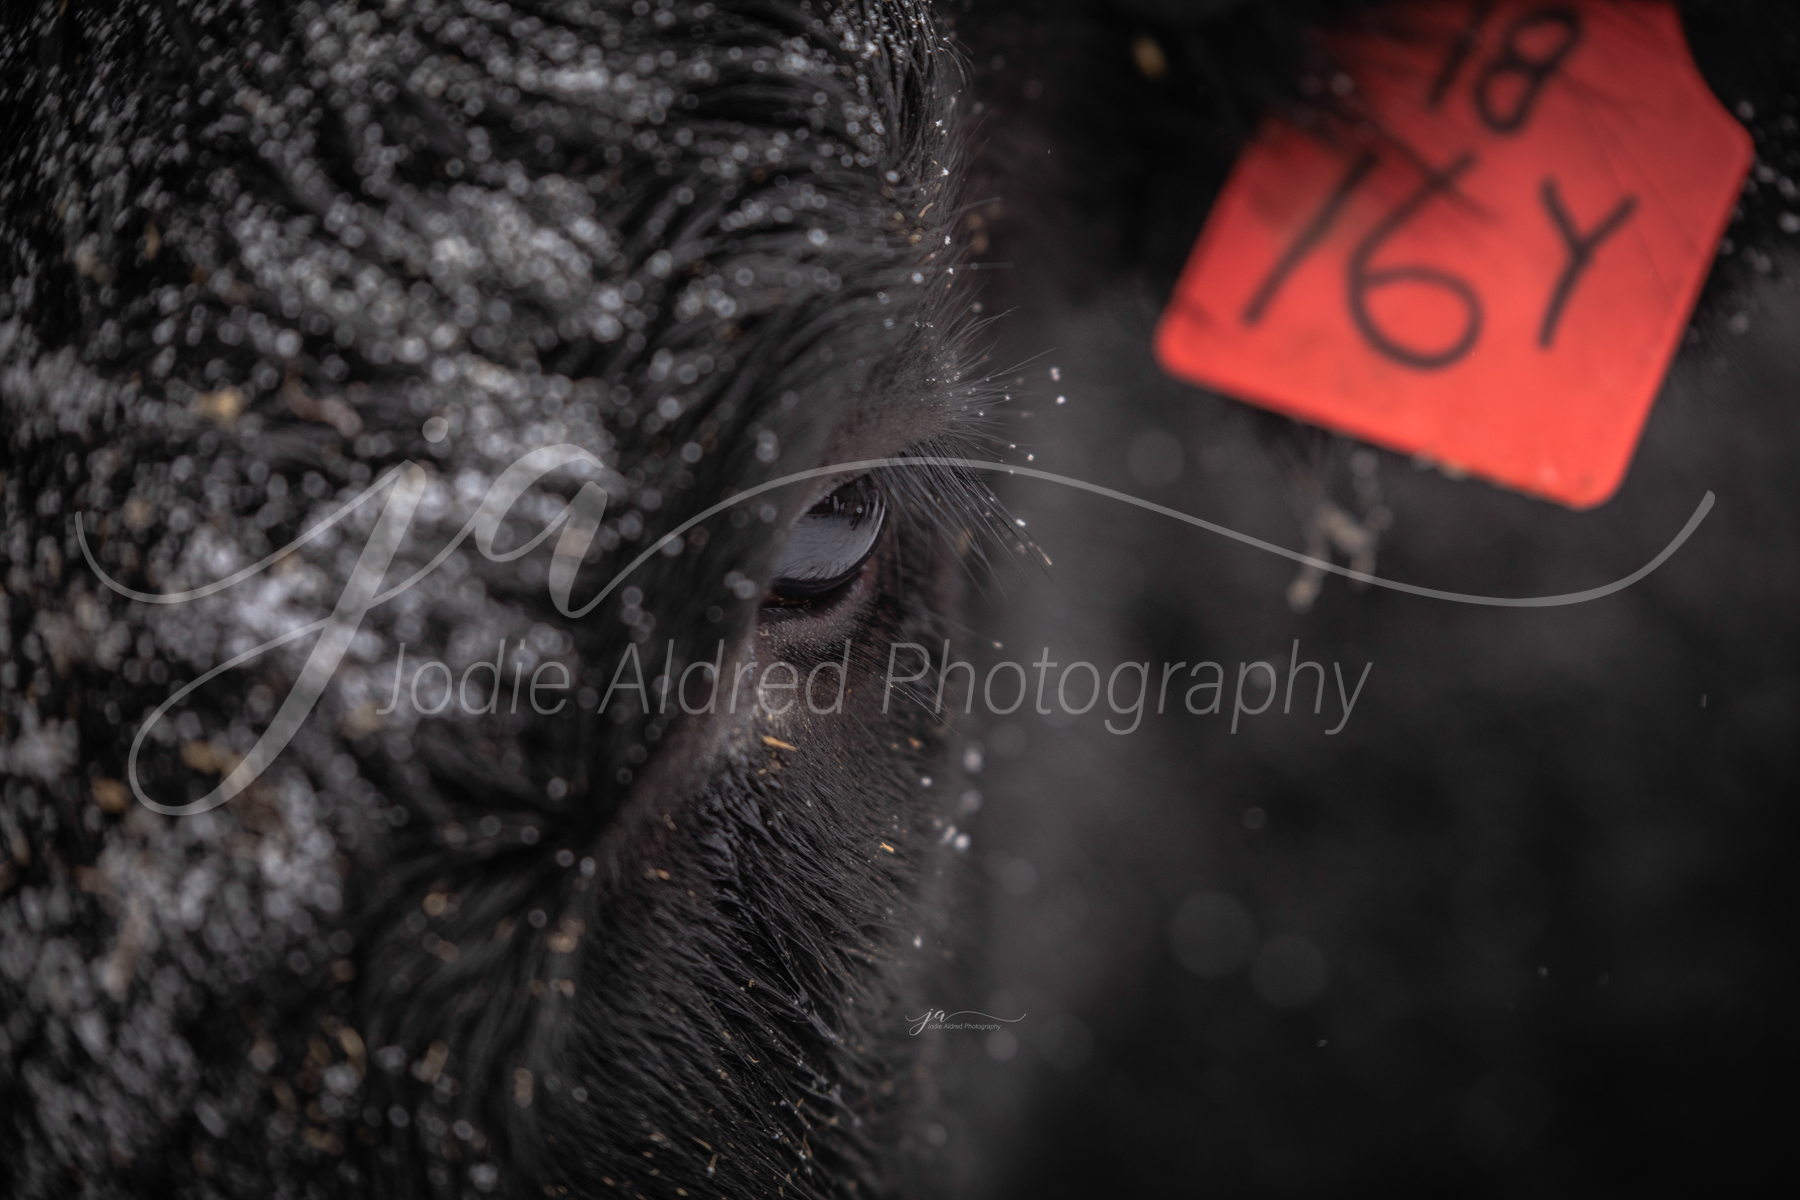 Jodie-Aldred-Photography-Ontario-Agriculture-Photographer-face-barn-cattle-snow-winter.jpg